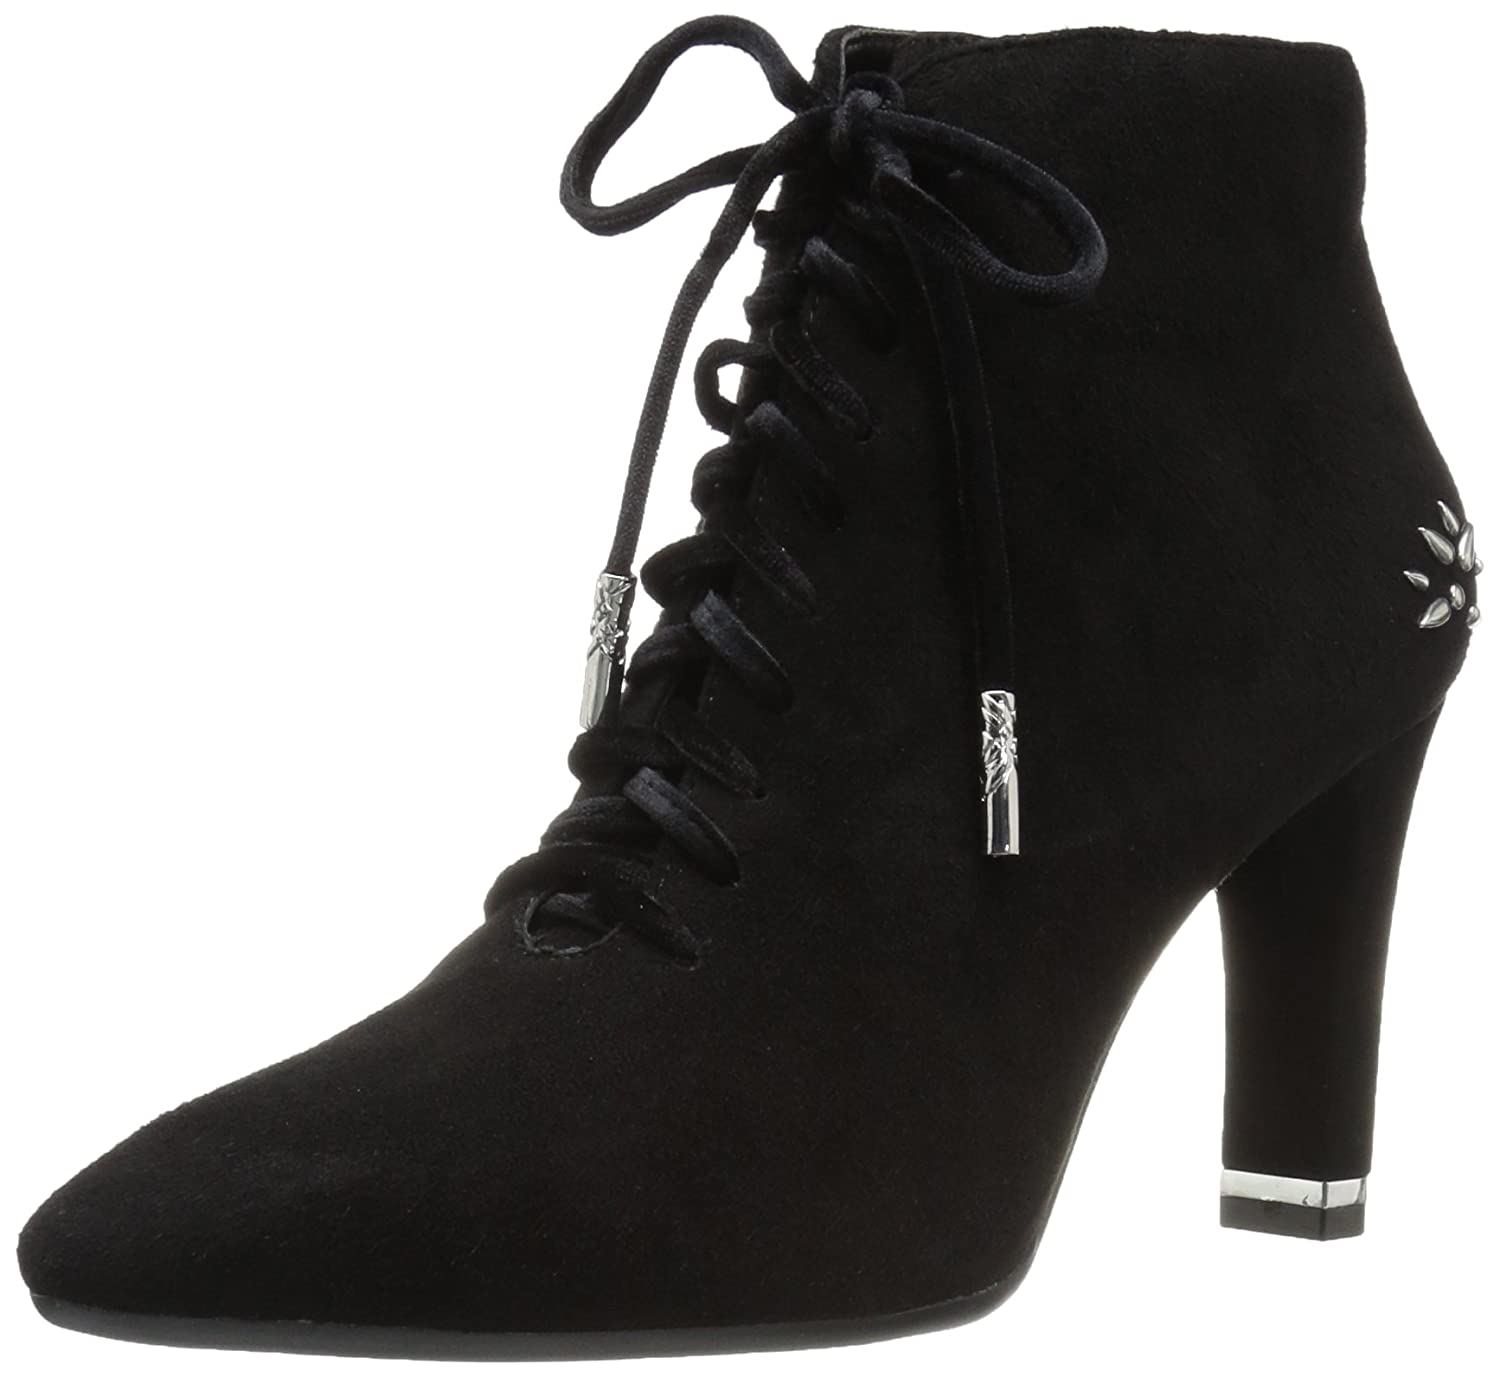 Aerosoles Women's Tax Bracket Ankle Boot B074GZCJD8 10.5 B(M) US|Black Suede